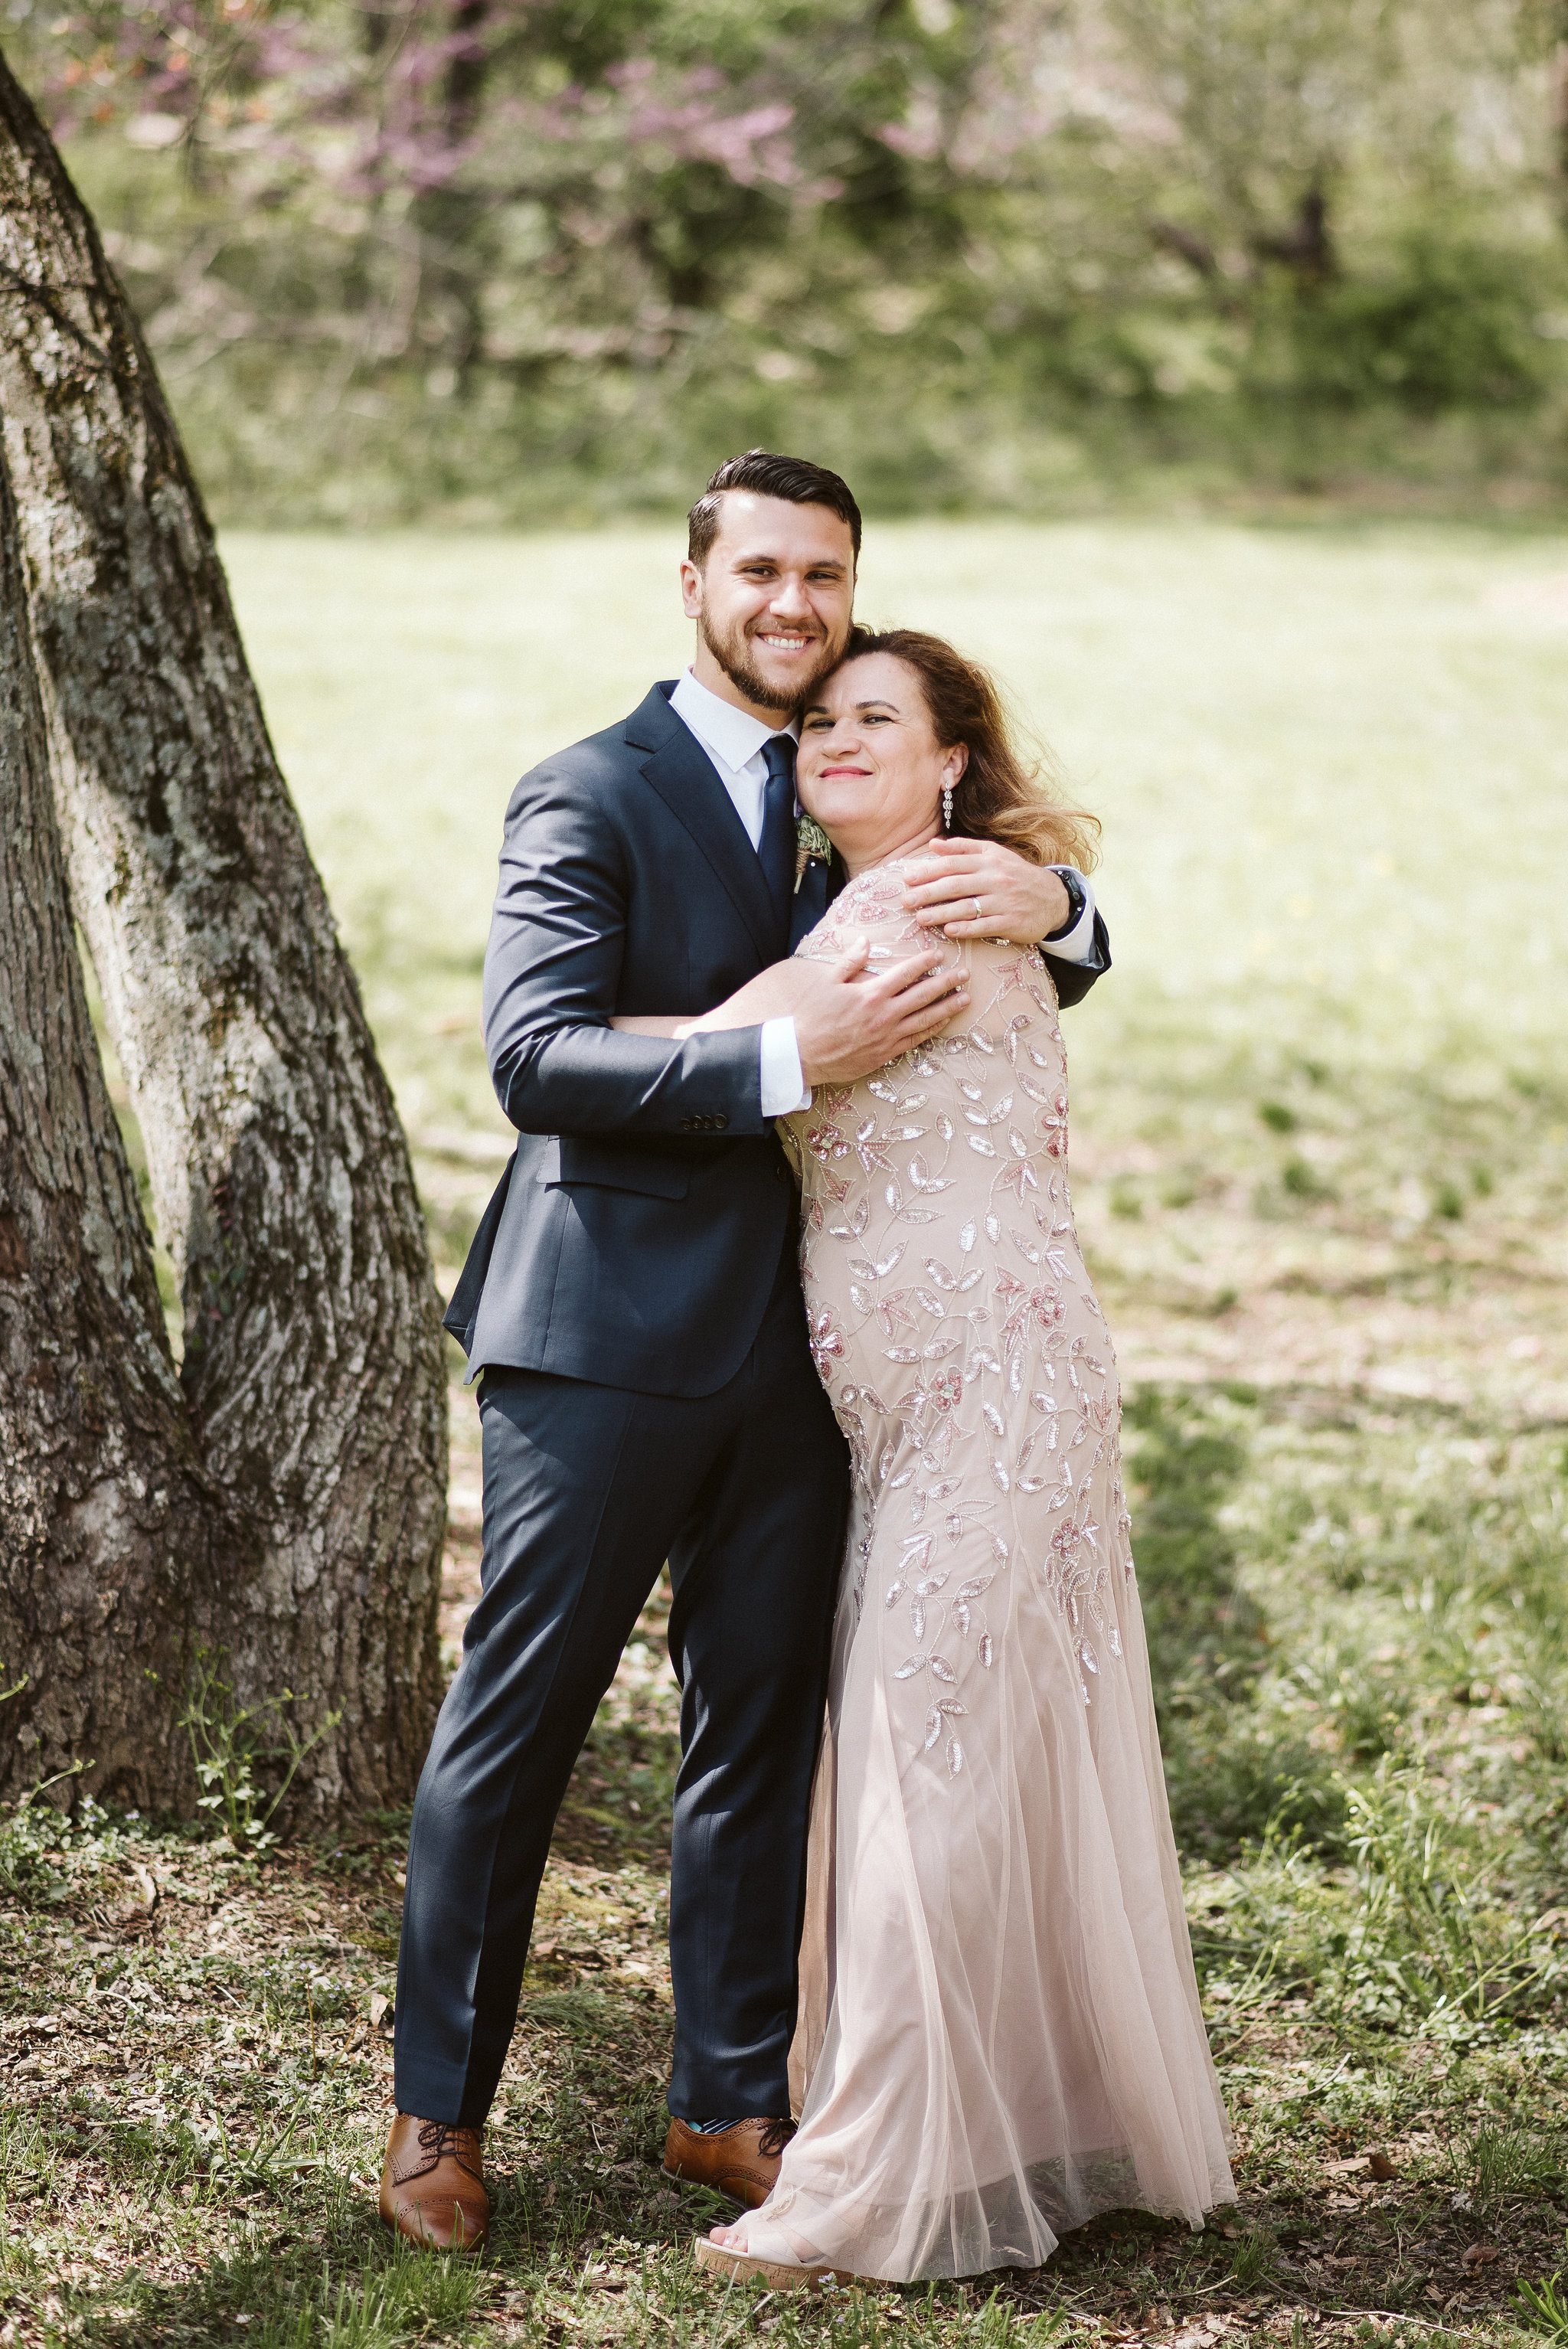 Spring Outdoor Wedding, Park, Baltimore Wedding Photographer, DIY, Classic, Upcycled, Garden Party, Romantic, Groom with Mother of the Groom, Family Portrait, Suit Supply